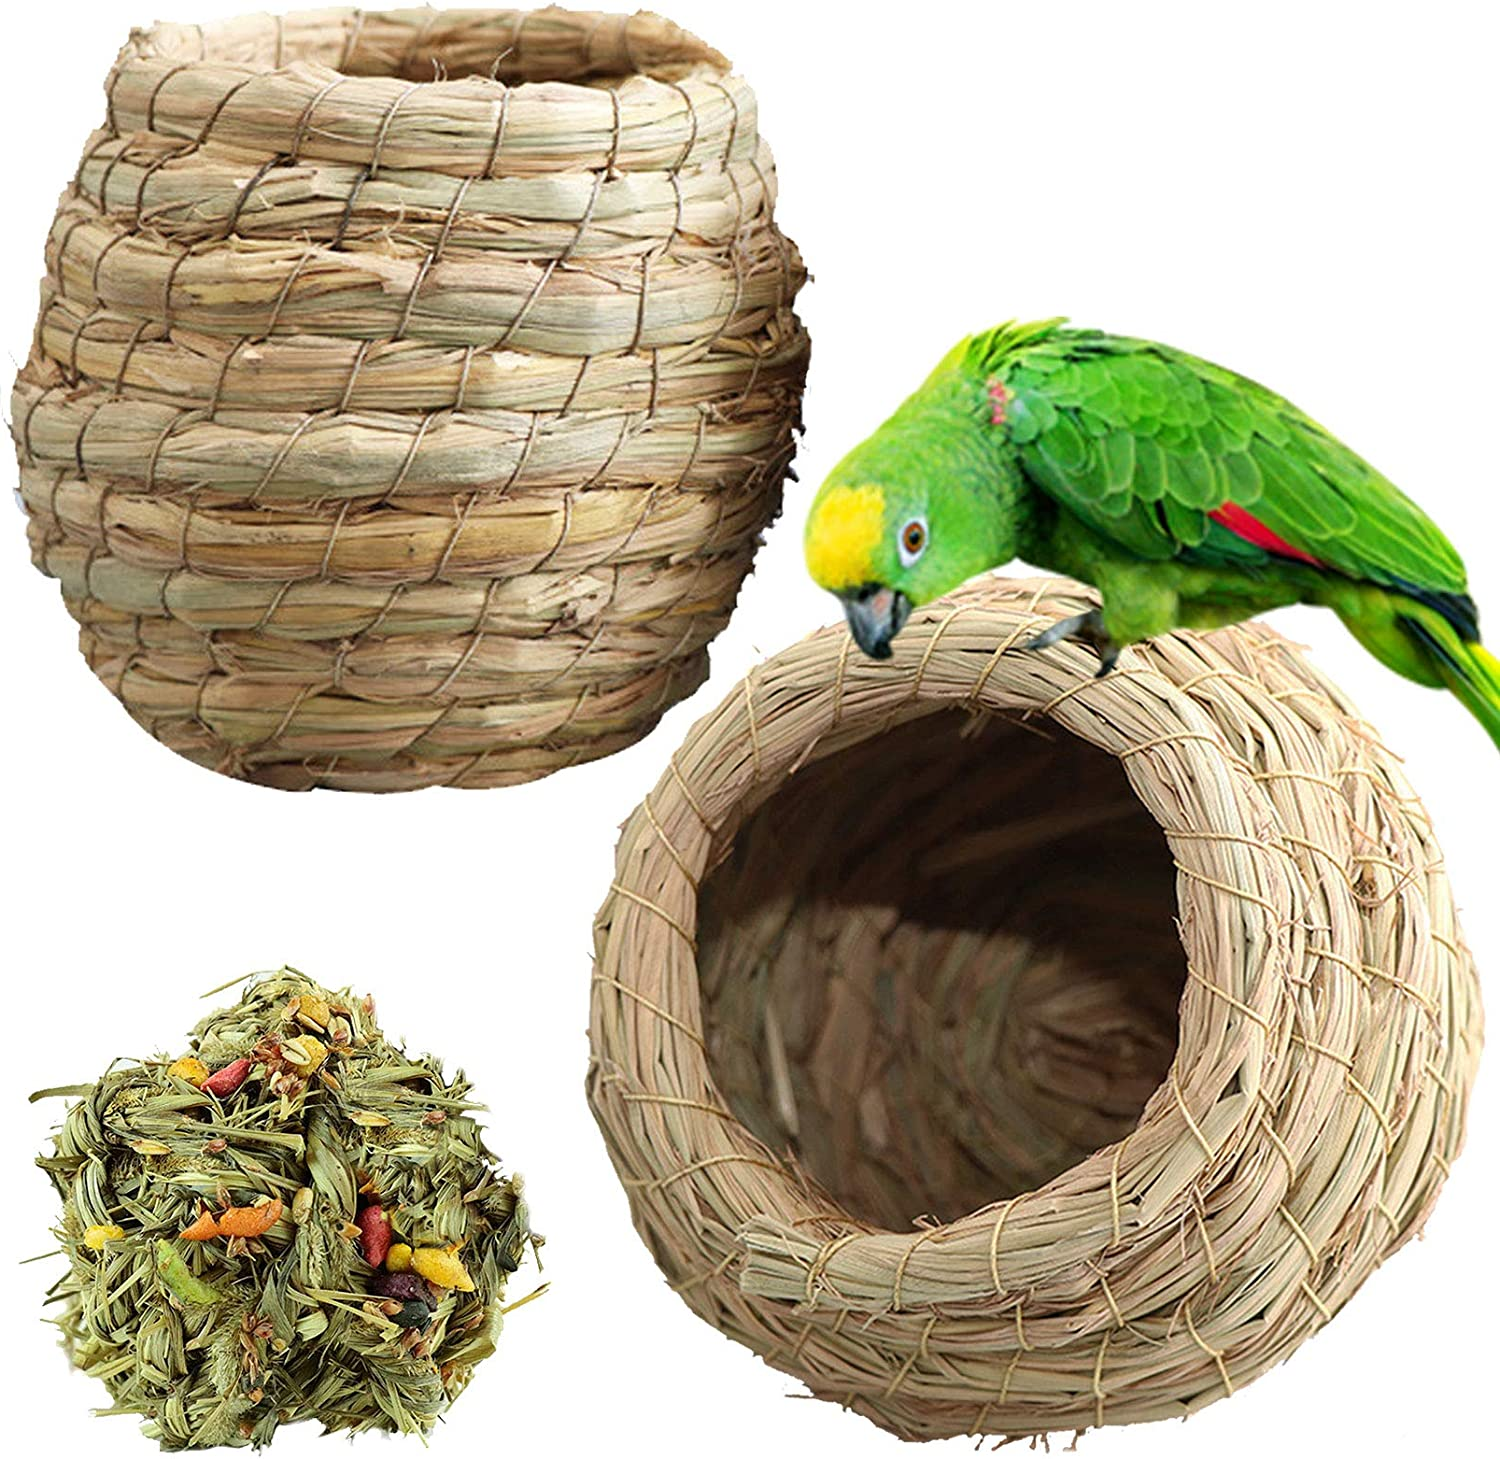 kathson Birdcages Straw Bird Birdho Nests GrassWoven Natural Cheap mail order shopping 5 ☆ very popular